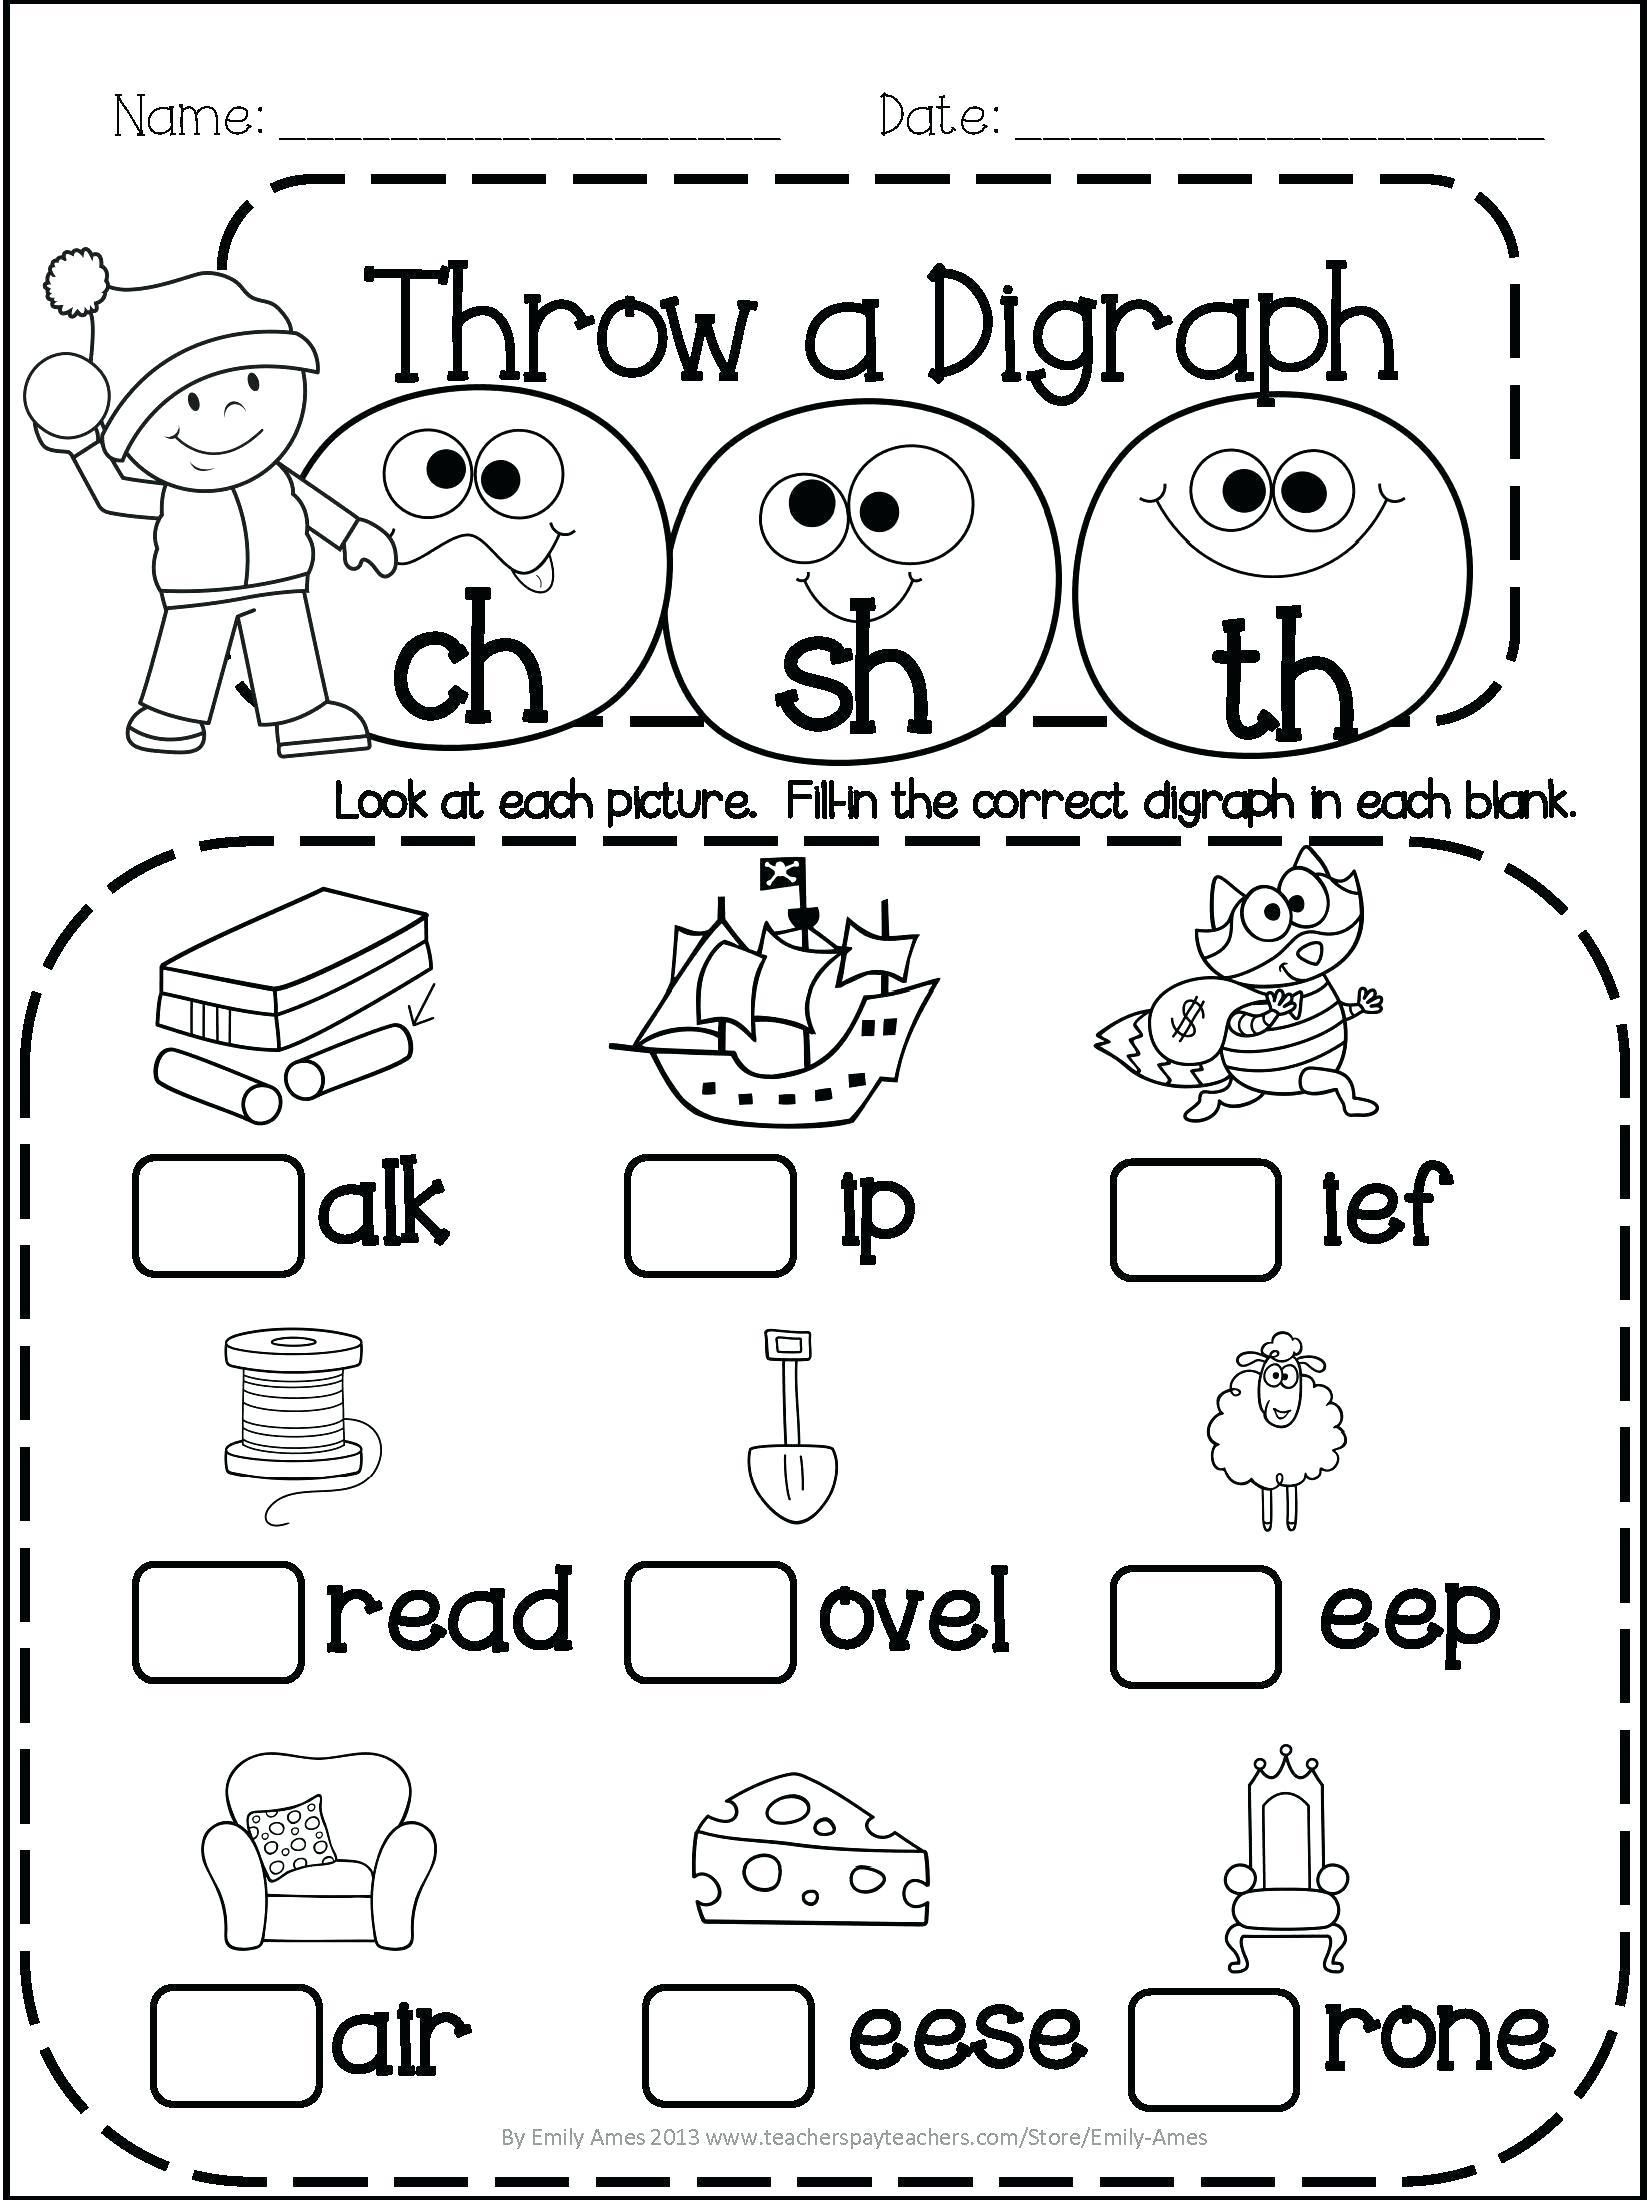 10 Math Homework Worksheets For Grade 1 In